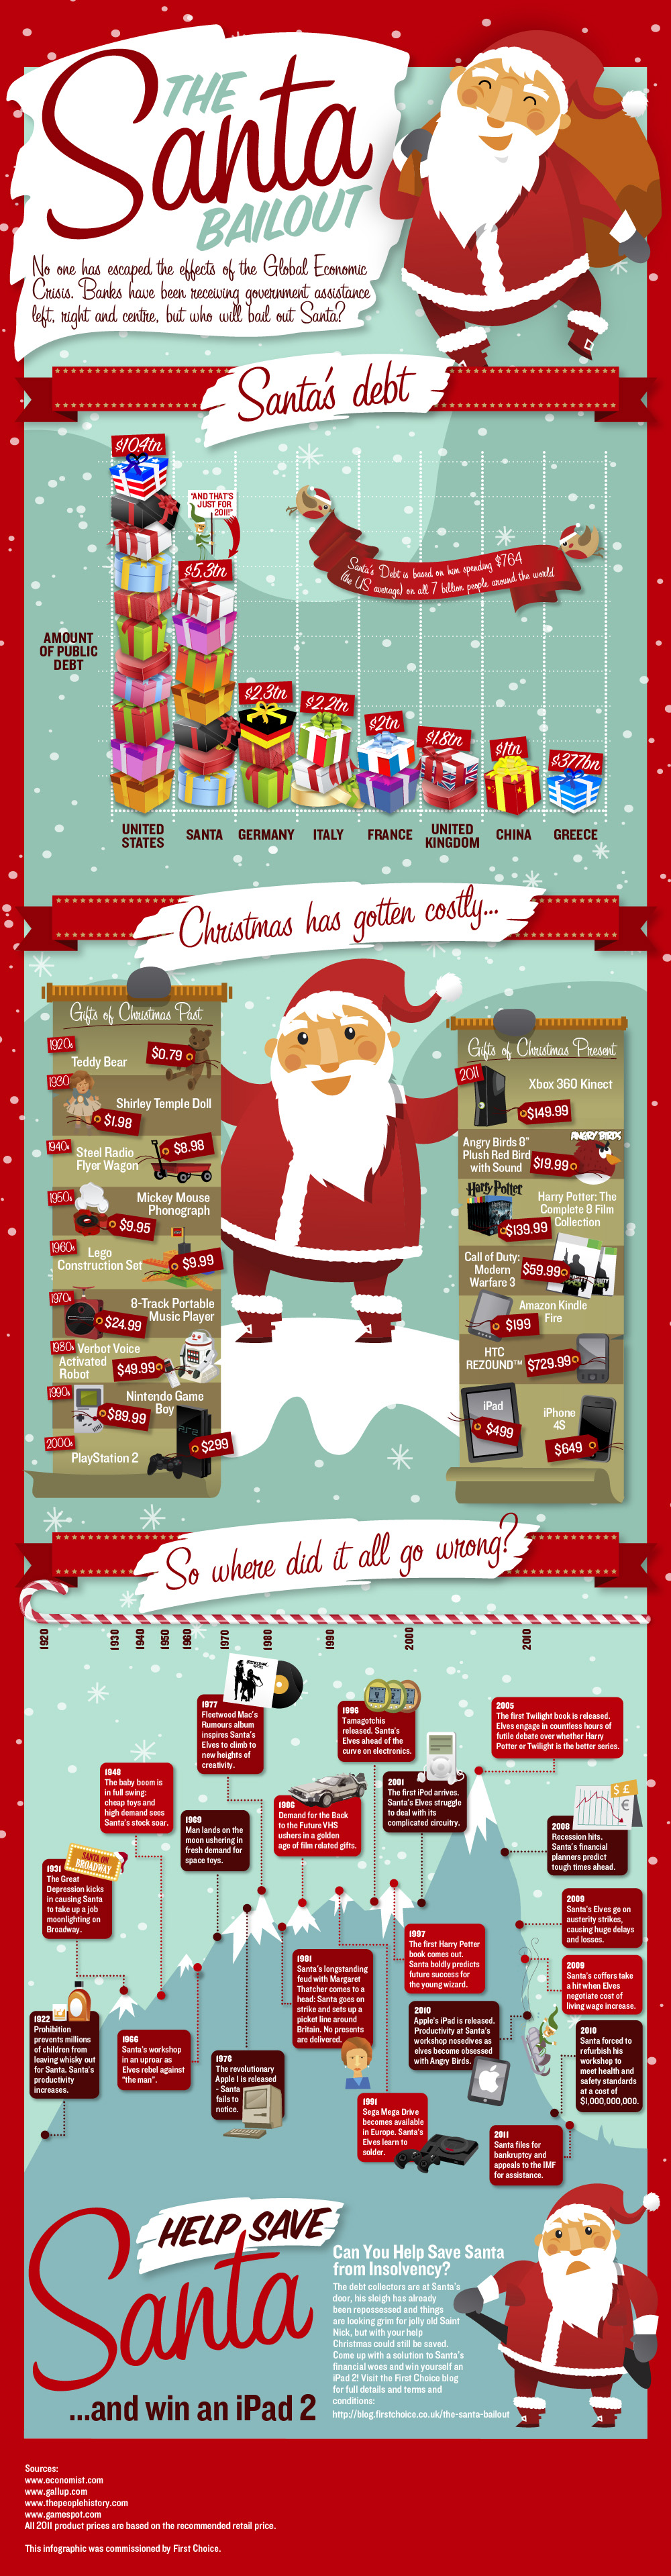 http://richardscottdesign.co.uk/infographics/large/santa-01.jpg